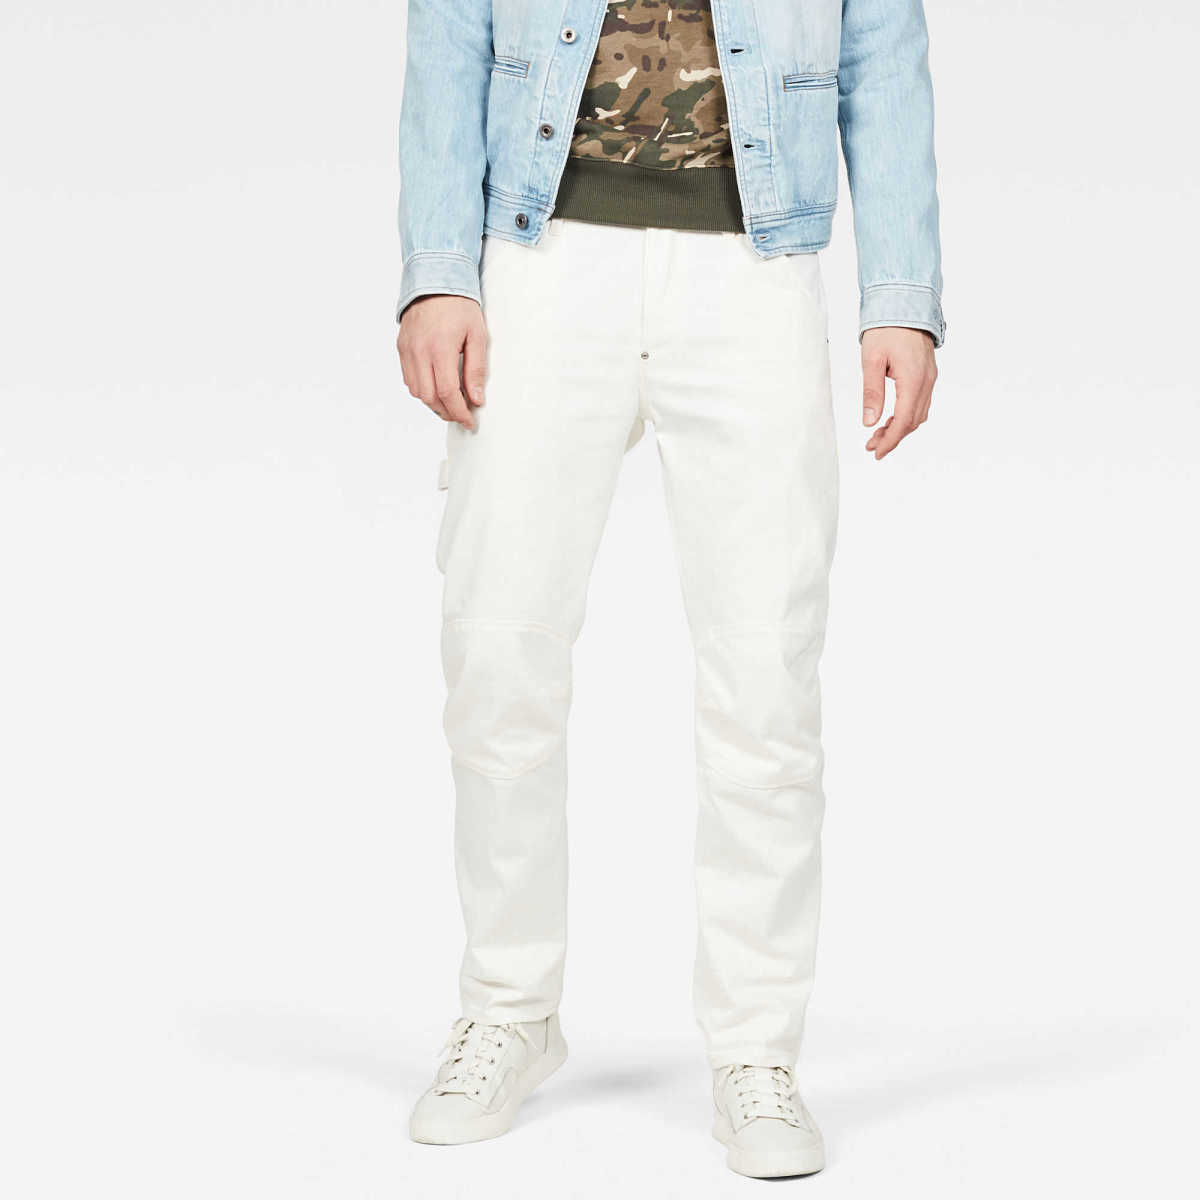 G-Star Male 5622 Workwear Zip 3d Straight Jeans Straight White USA - GOOFASH - Mens JEANS